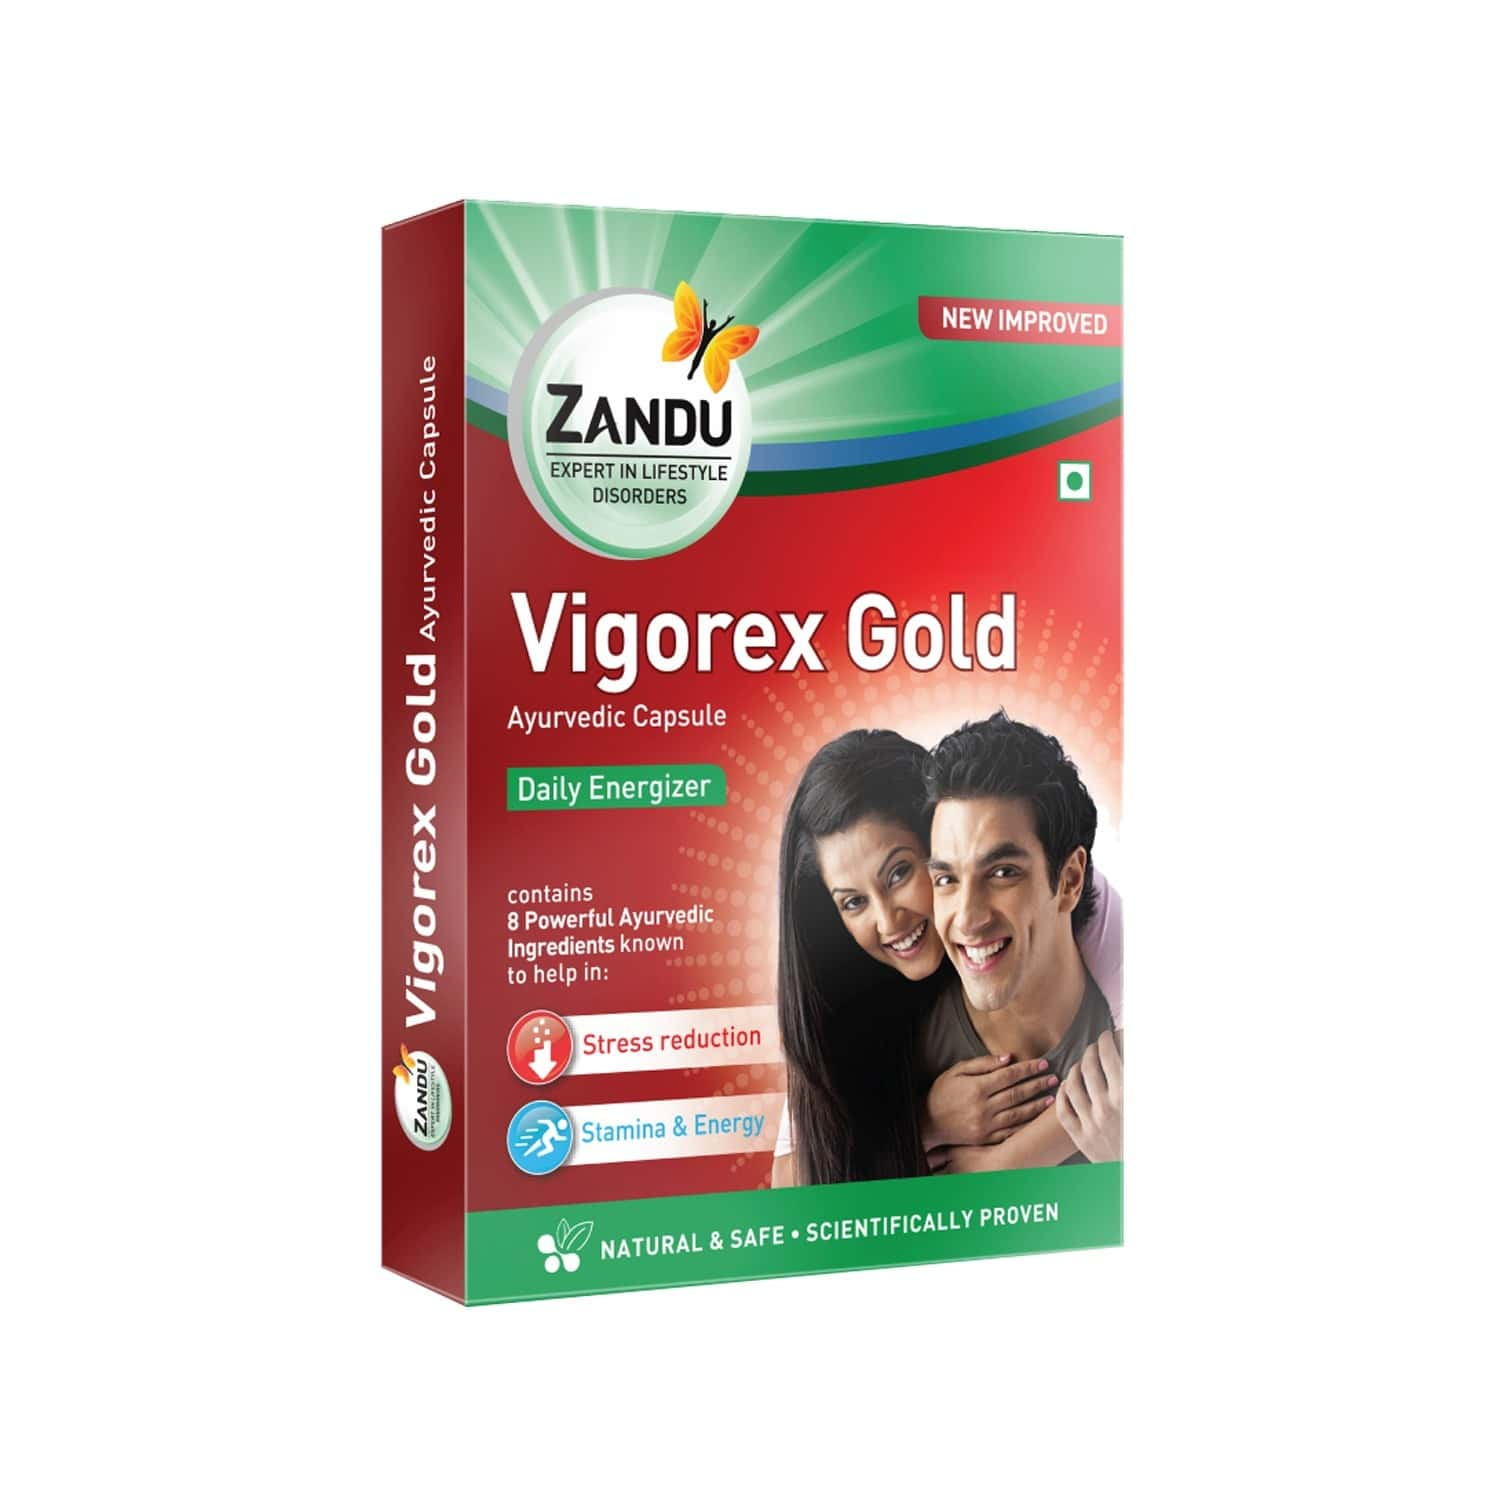 Zandu Vigorex Gold Vigor Improvement Capsules Bottle Of 20